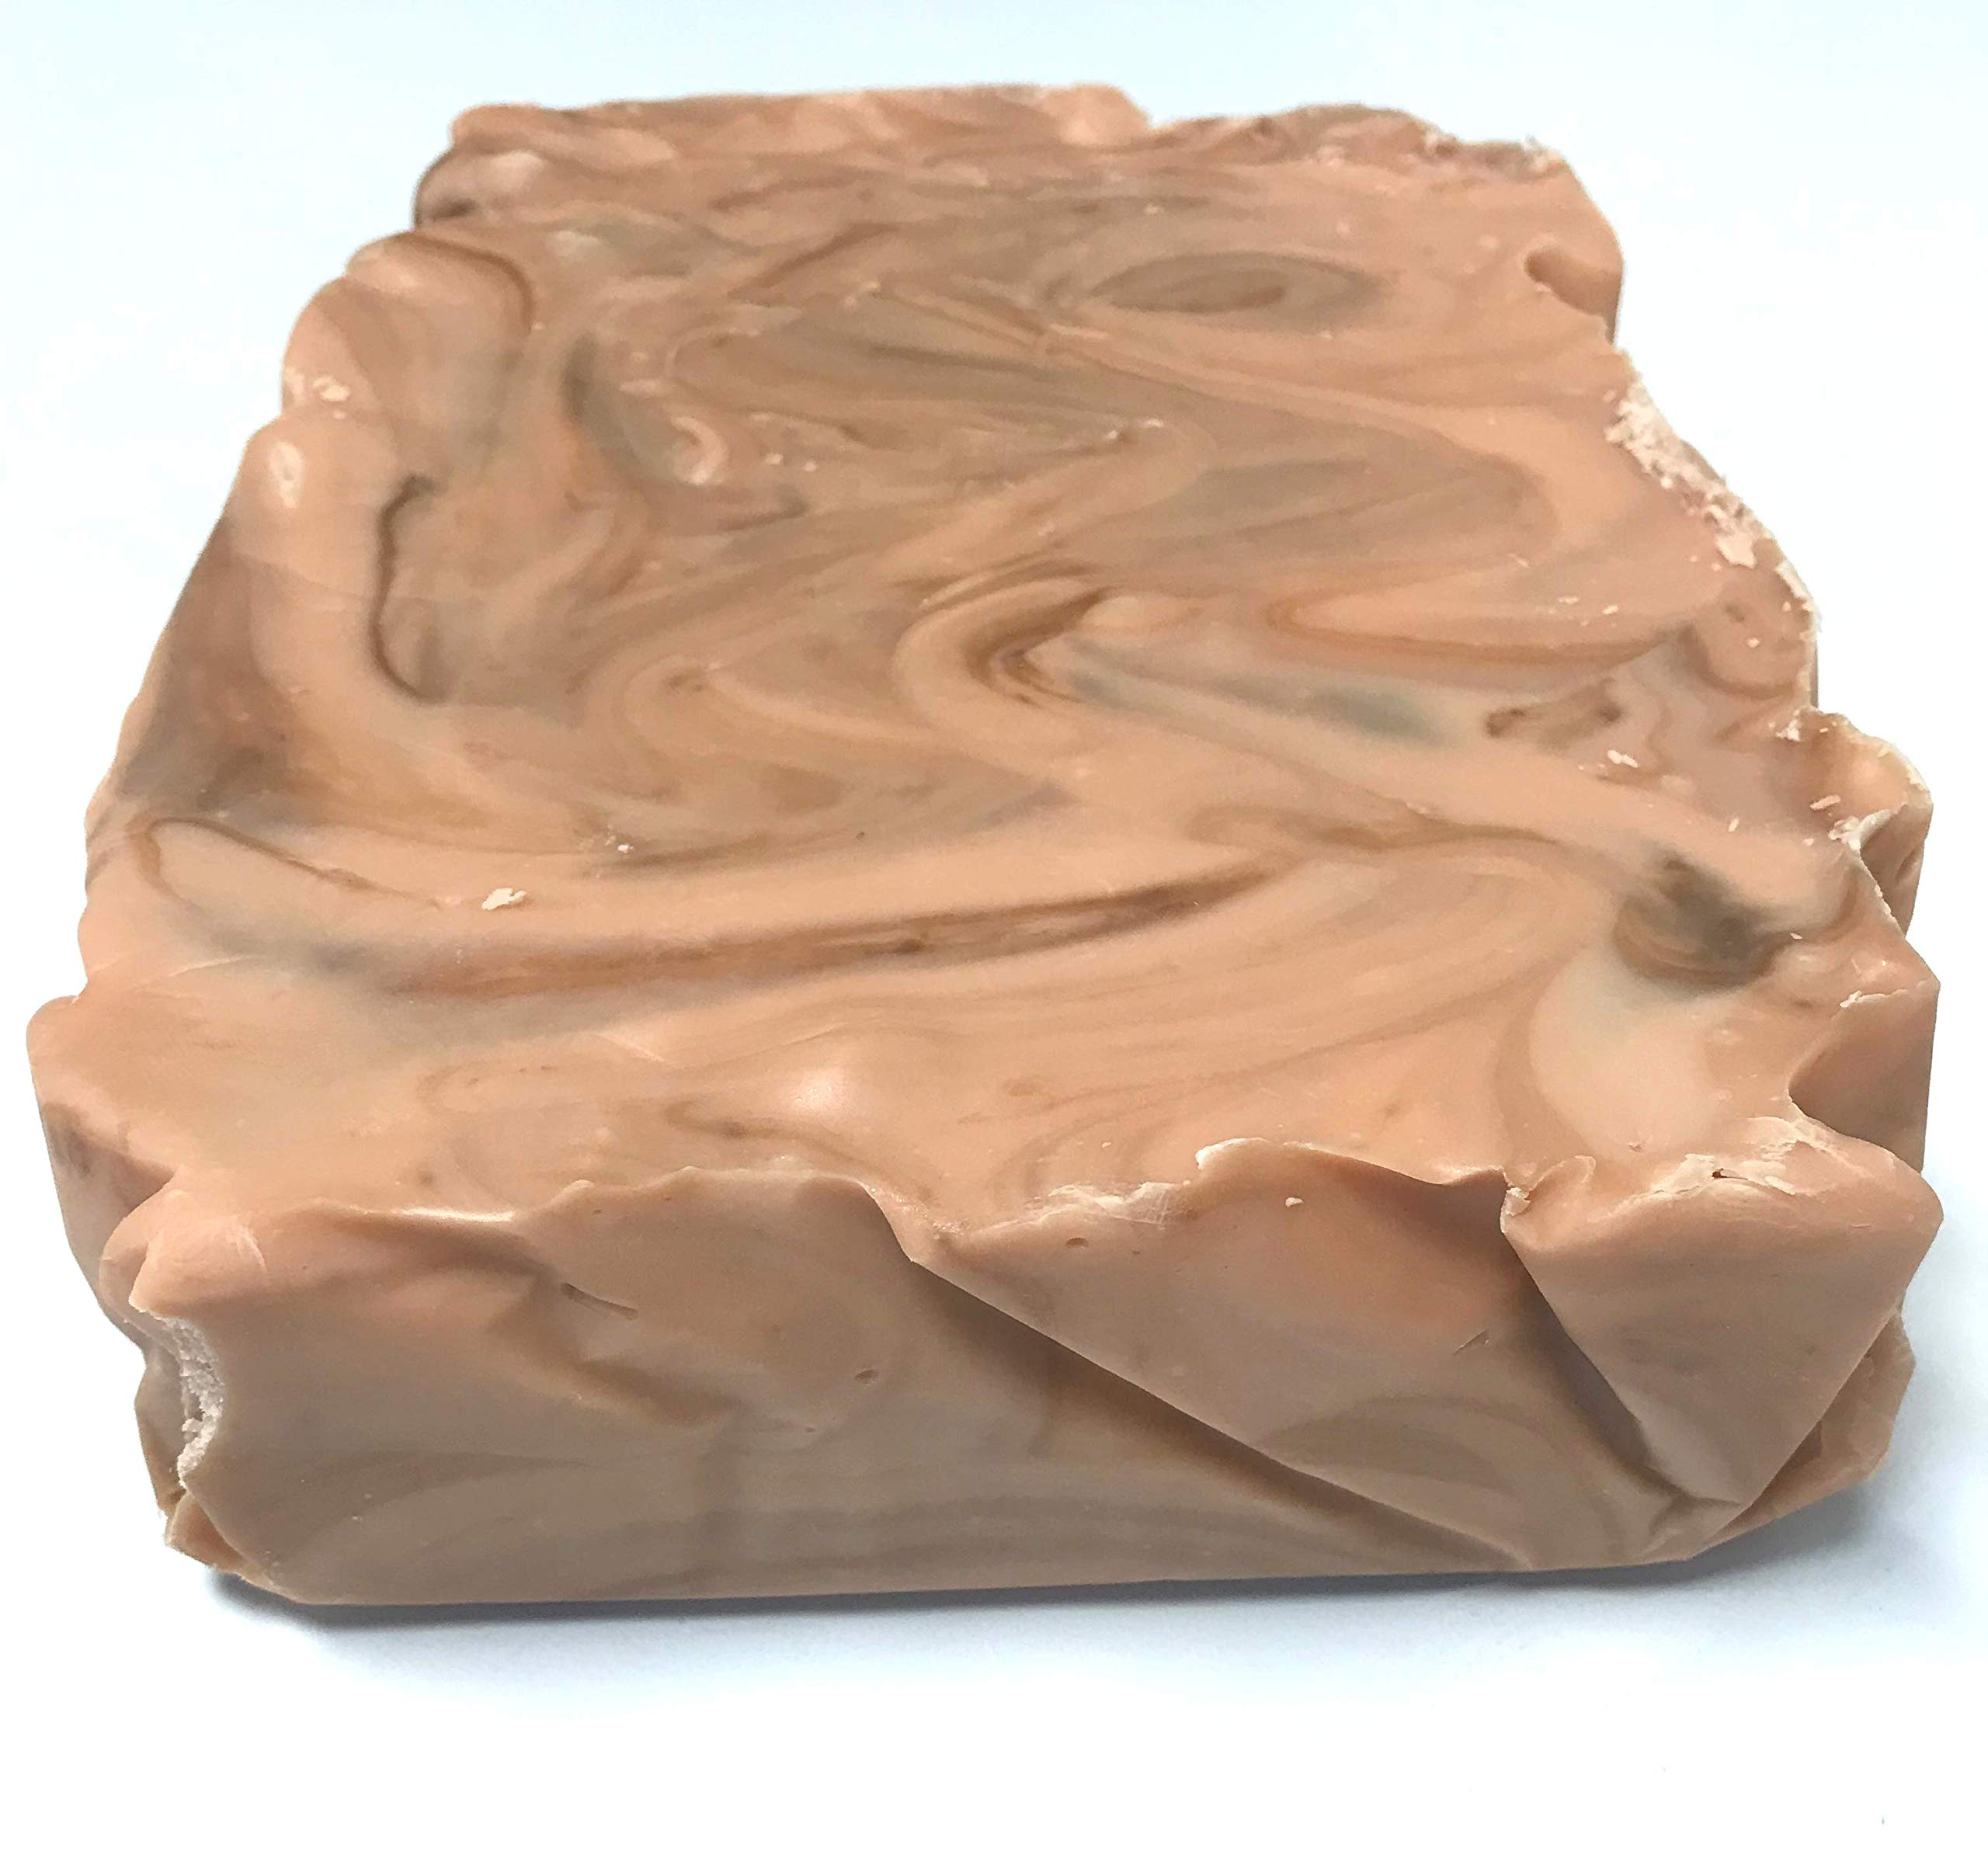 Handmade Fudge 5 Lb. Loaf Amaretto by How Sweet It Is Fudge & Candy Company